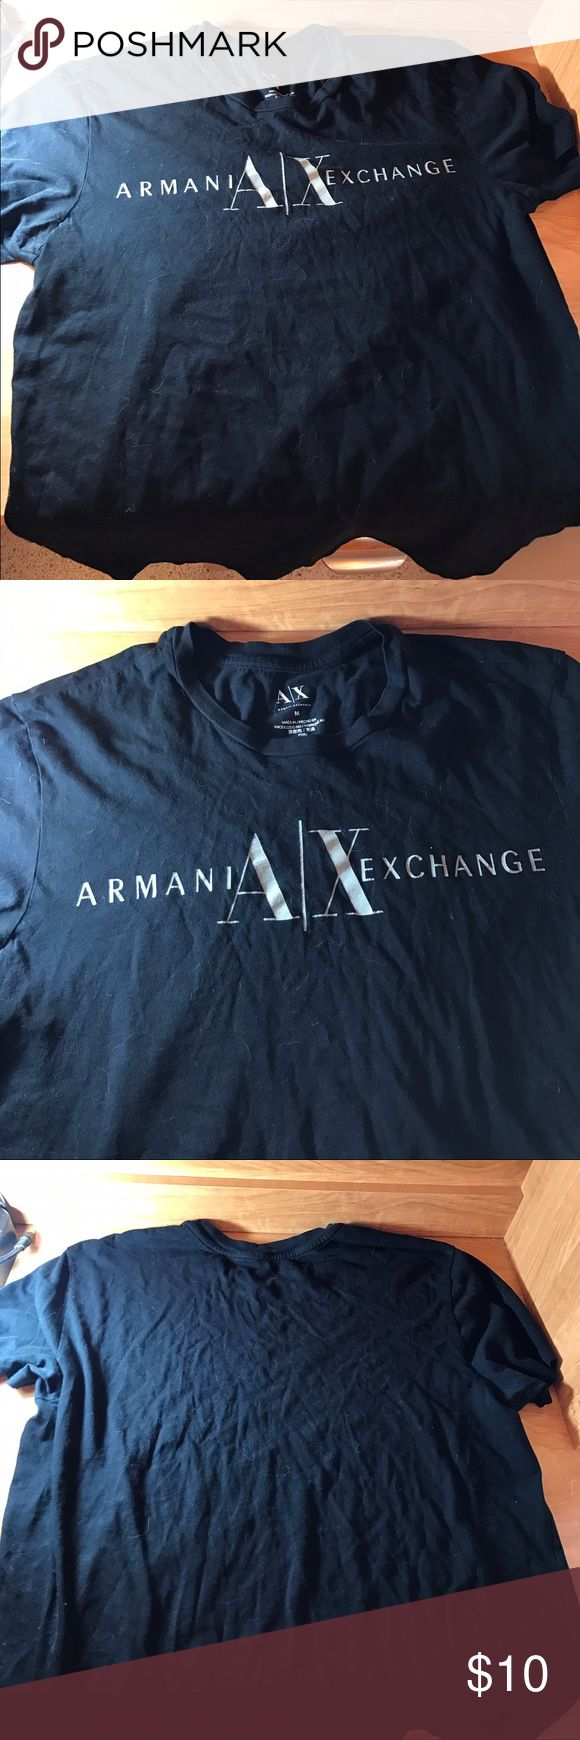 Armani Exchange Medium Short Sleeve Shirt Received as a gift with holiday purchase. It does not have tags but it doesn't appear to be very worn. It has been sitting in the box that it came in. I'm not sure if it's a men's medium or a women's medium, either way it's too small. Thanks for viewing! Check out my other items and ask about bundling. A/X Armani Exchange Tops Tees - Short Sleeve